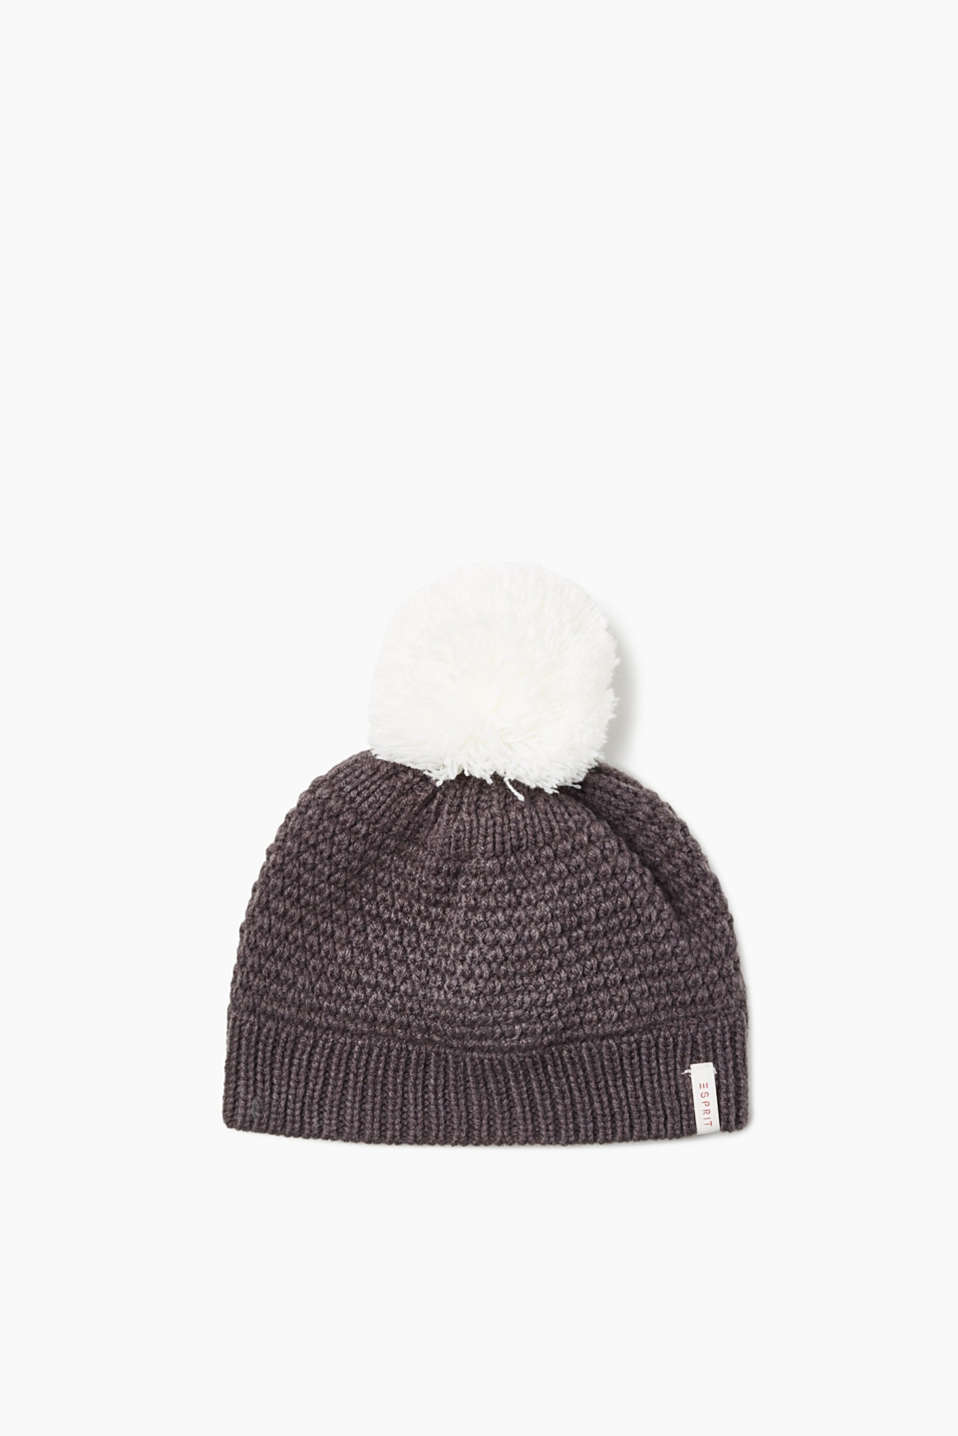 This knit hat with a contrasting colour bobble and soft fleece lining is a heavenly highlight for cold days.